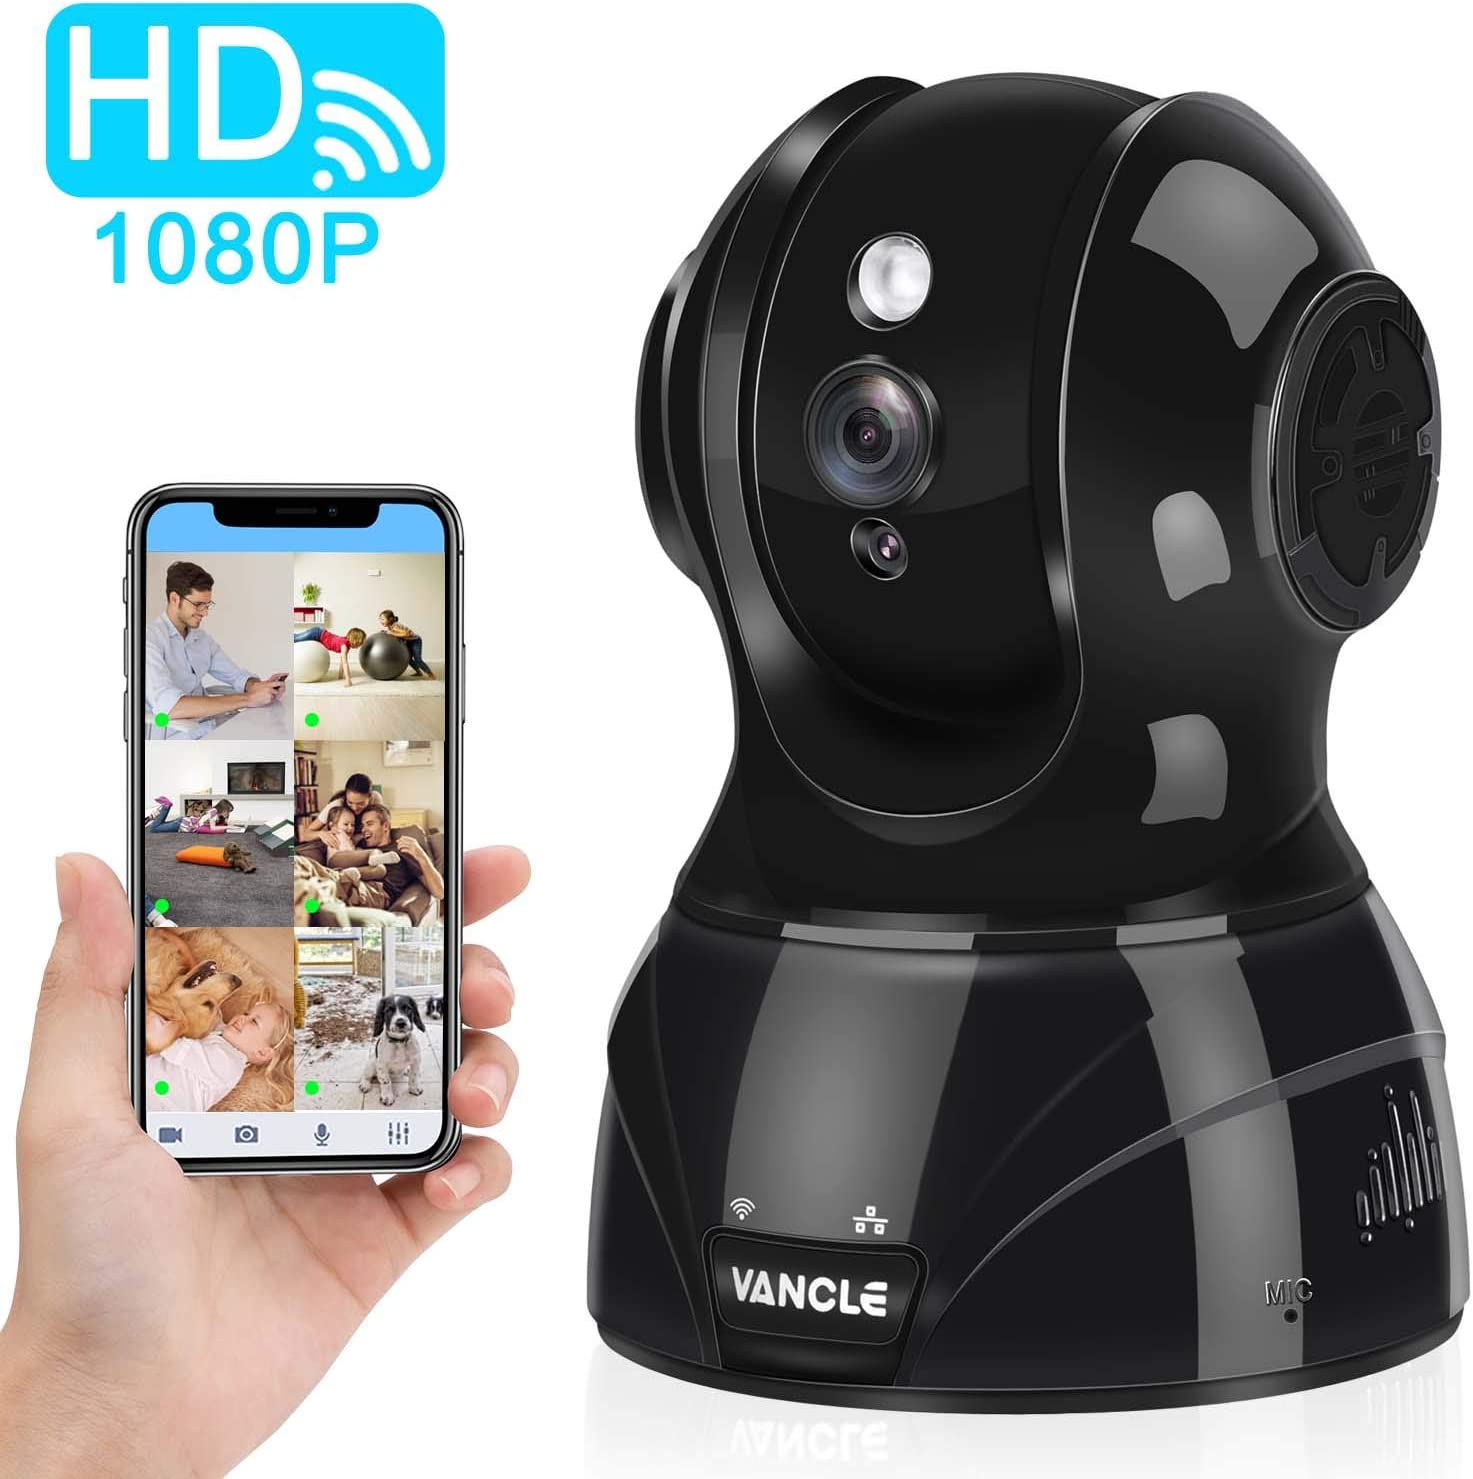 Vancle Wireless IP Camera 1080p HD with Motion Detection Night Vision Two Way Audio Pan Tilt Zoom Supports 2.4G WiFi for Home Surveillance Baby Pet Monitor, Compatible with Alexa 1080P – Black